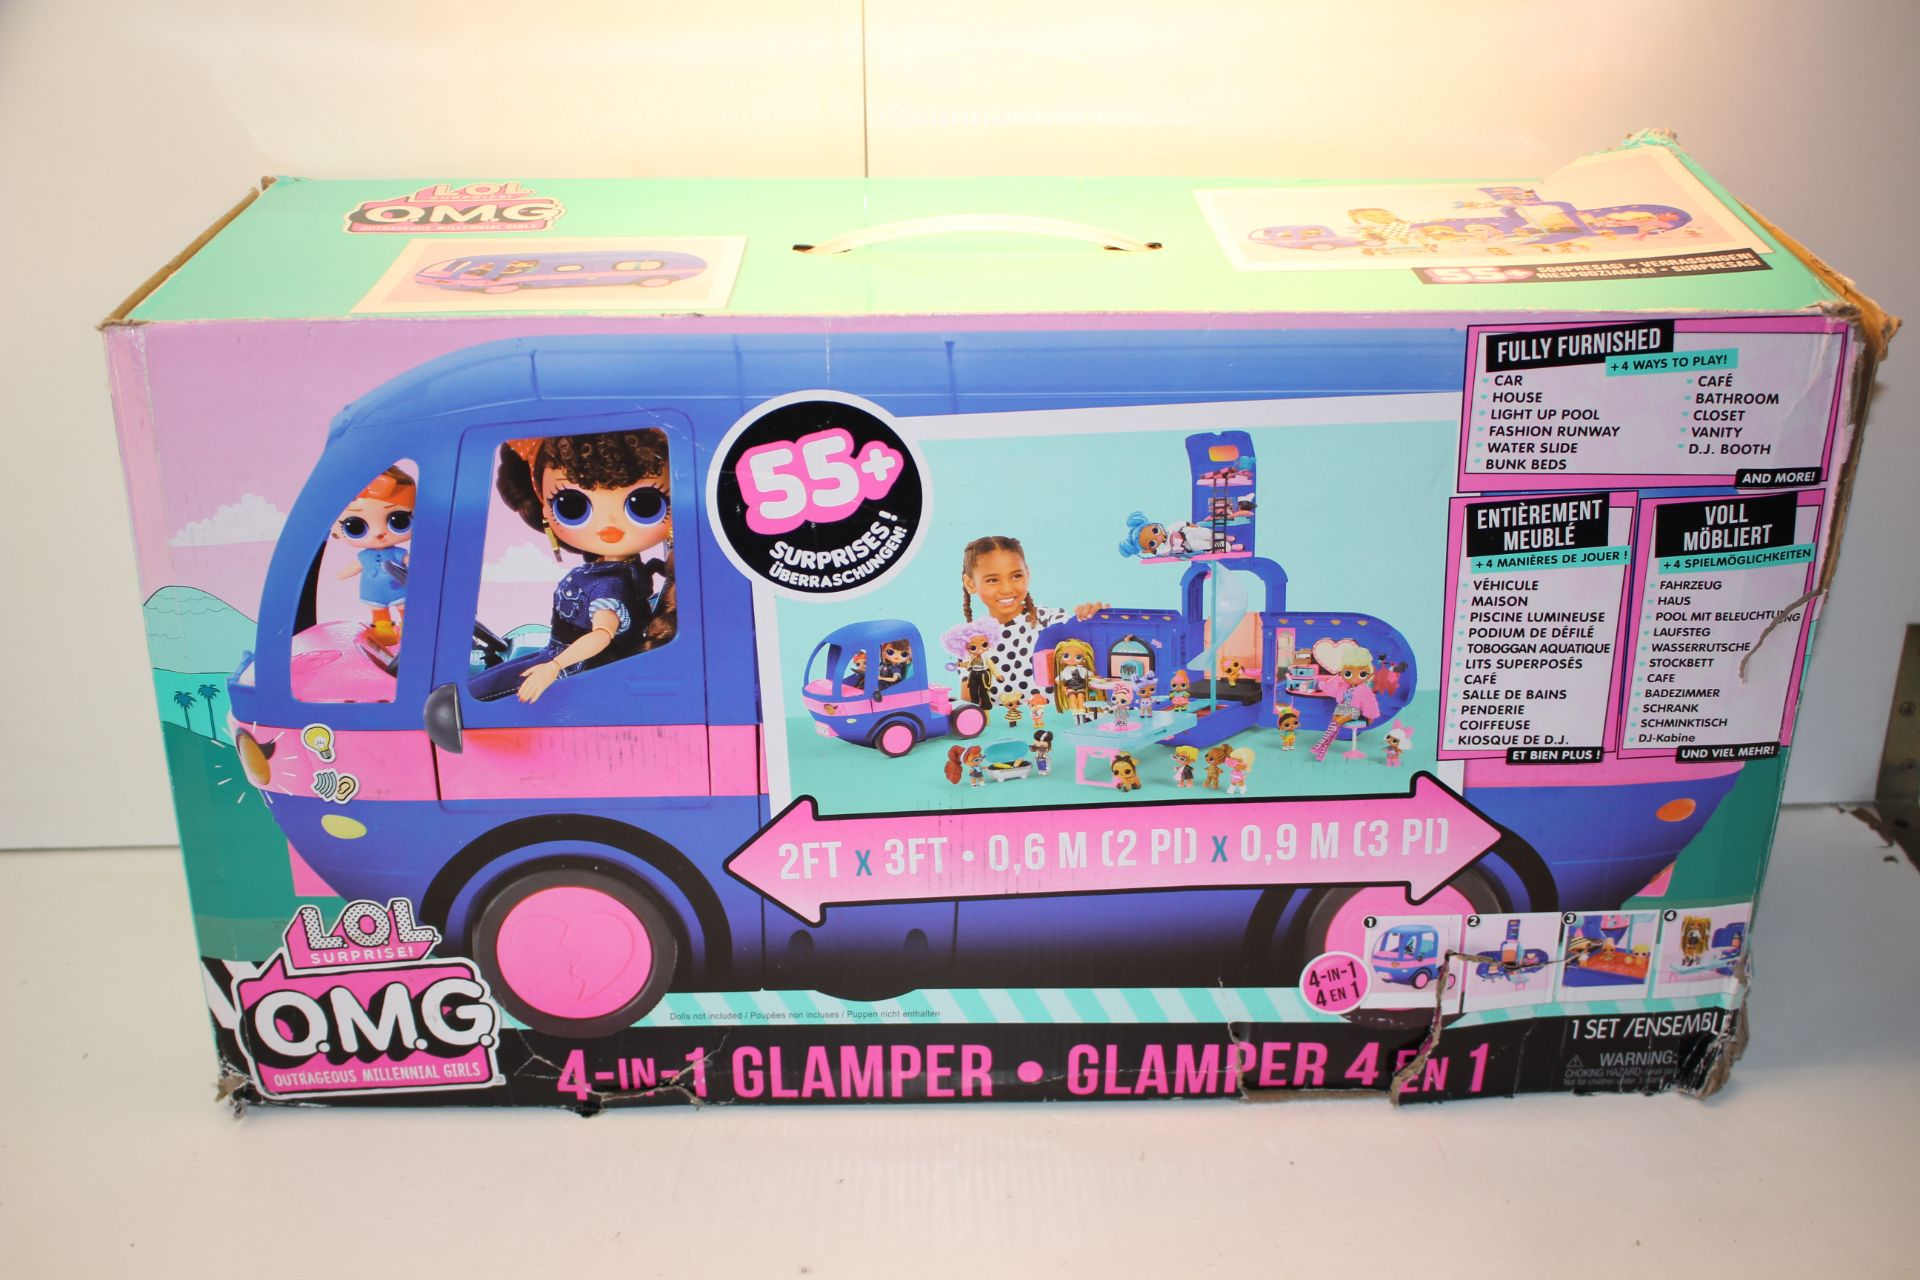 BOXED L.O.L SURPRISE O.M.G 4-IN-1 GLAMPER RRP £64.99Condition ReportAppraisal Available on